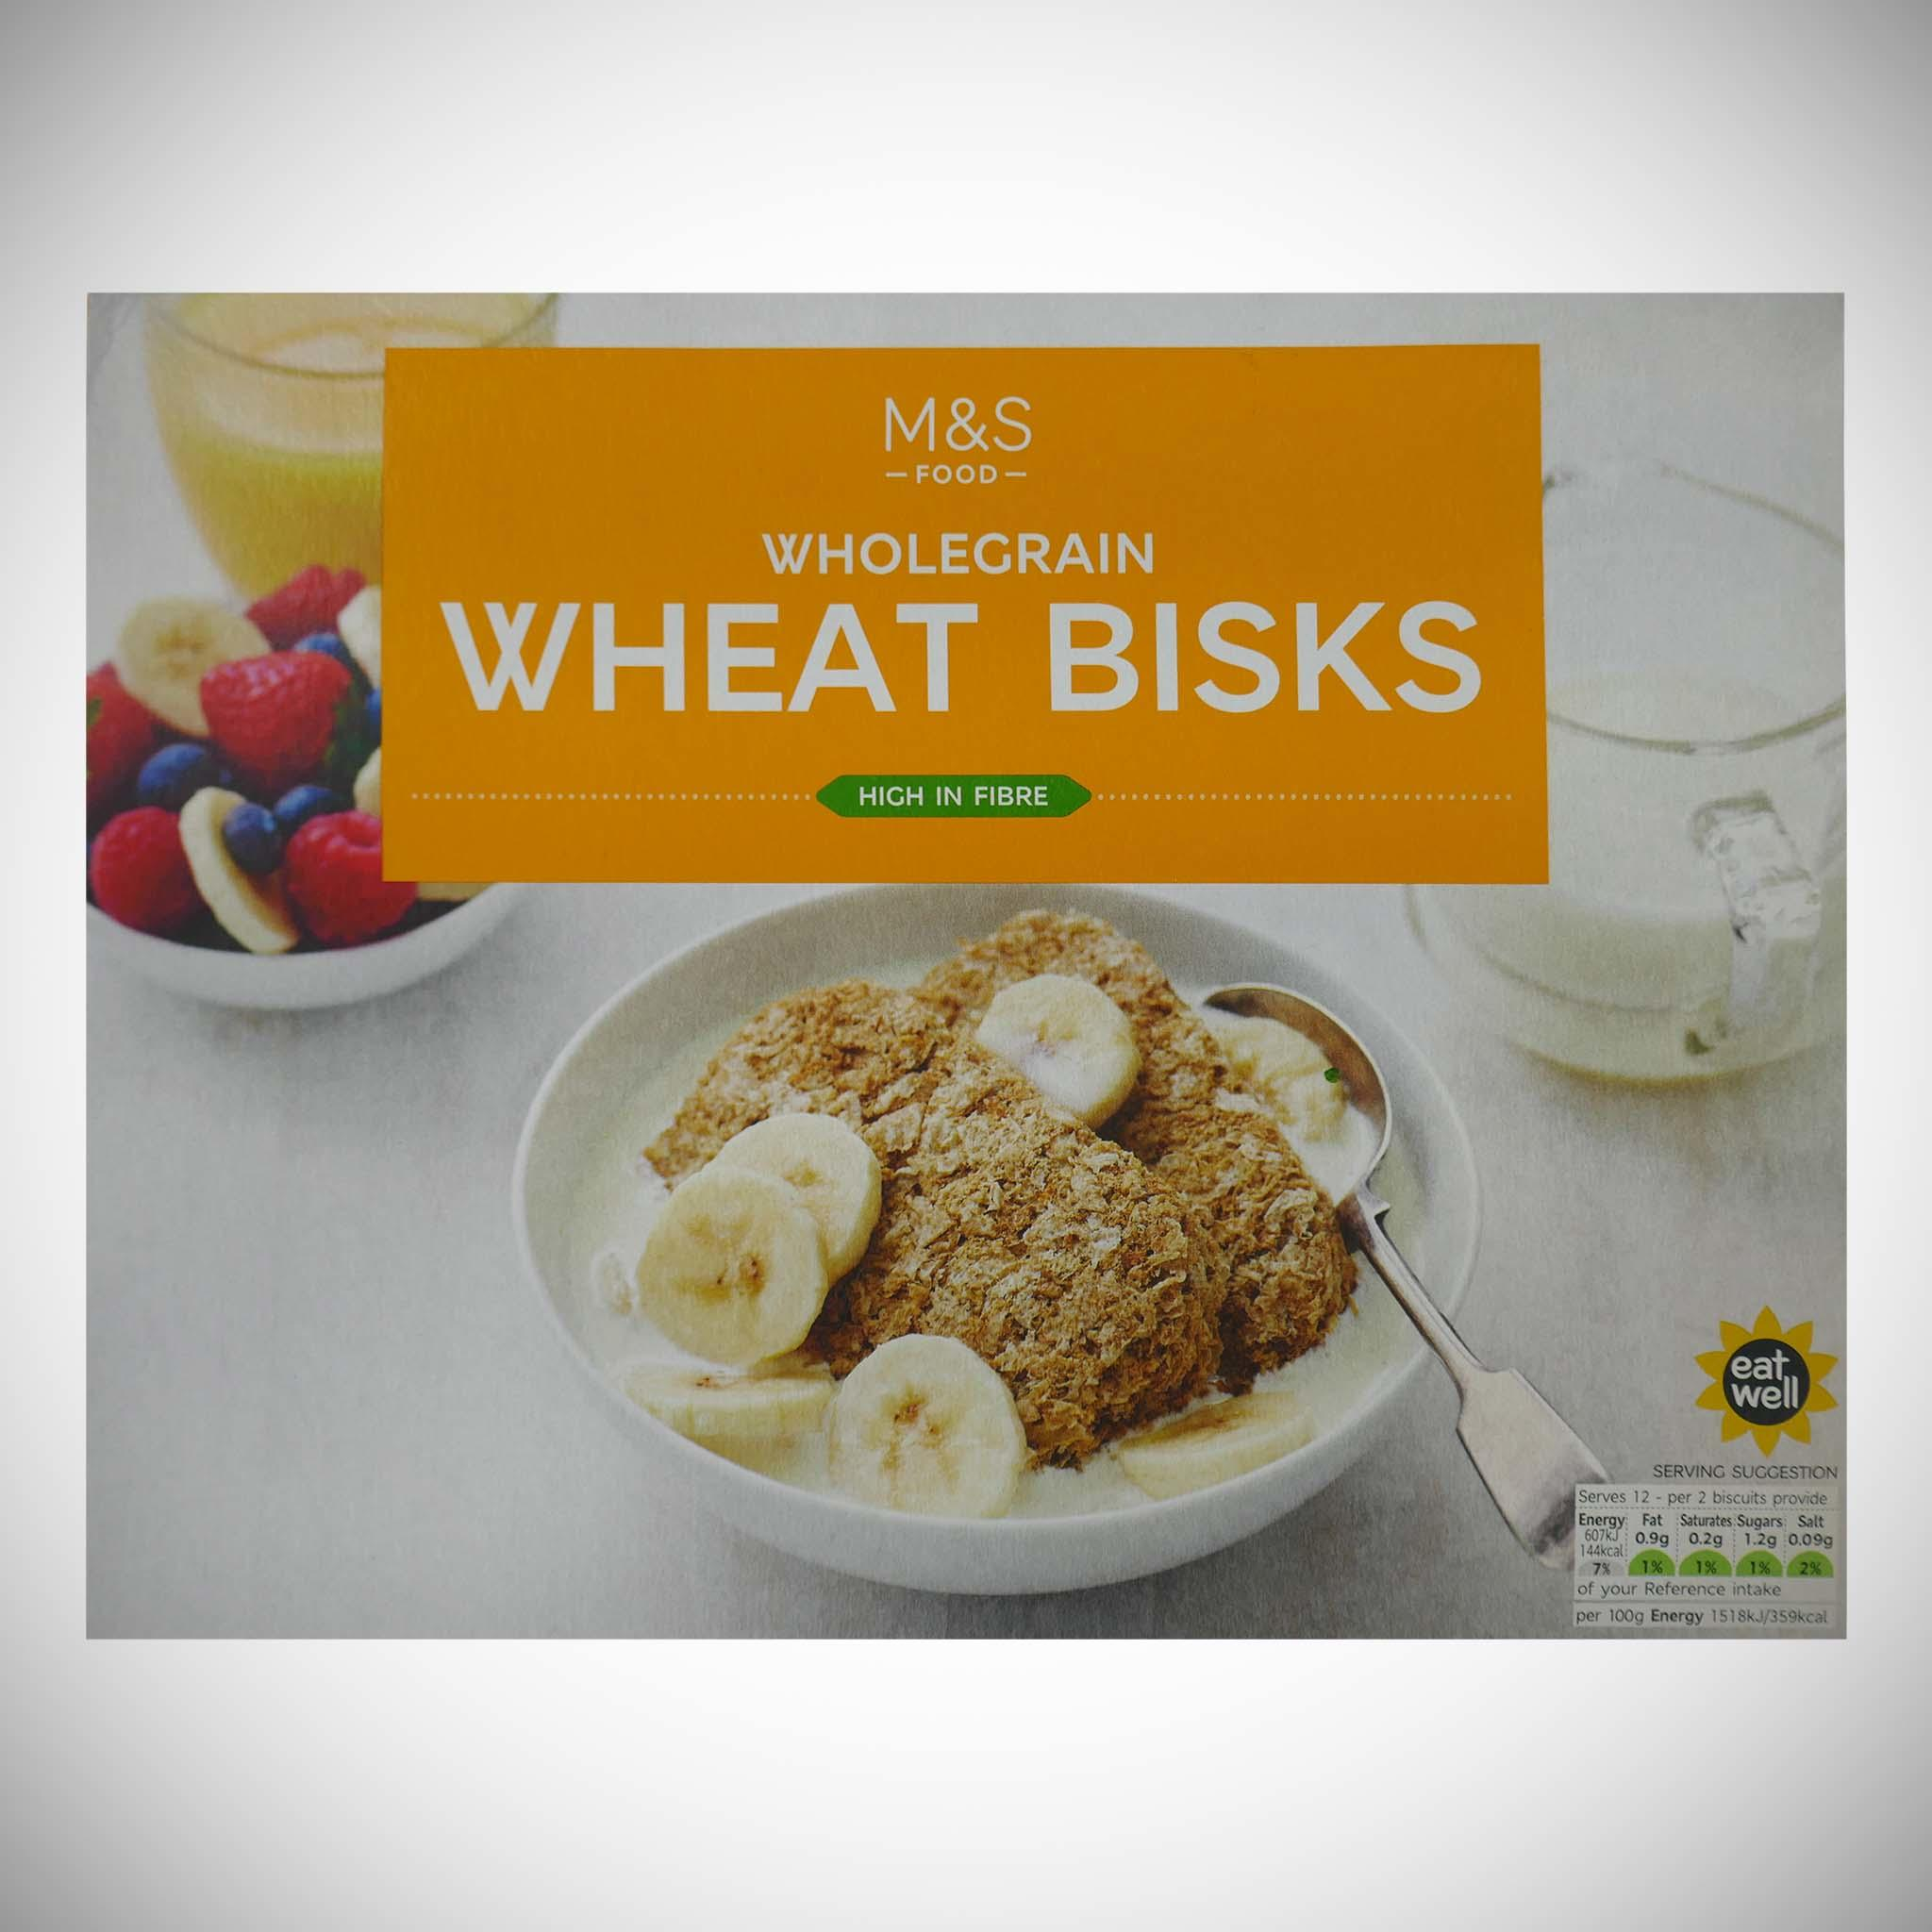 Wholegrain Wheat Bisks